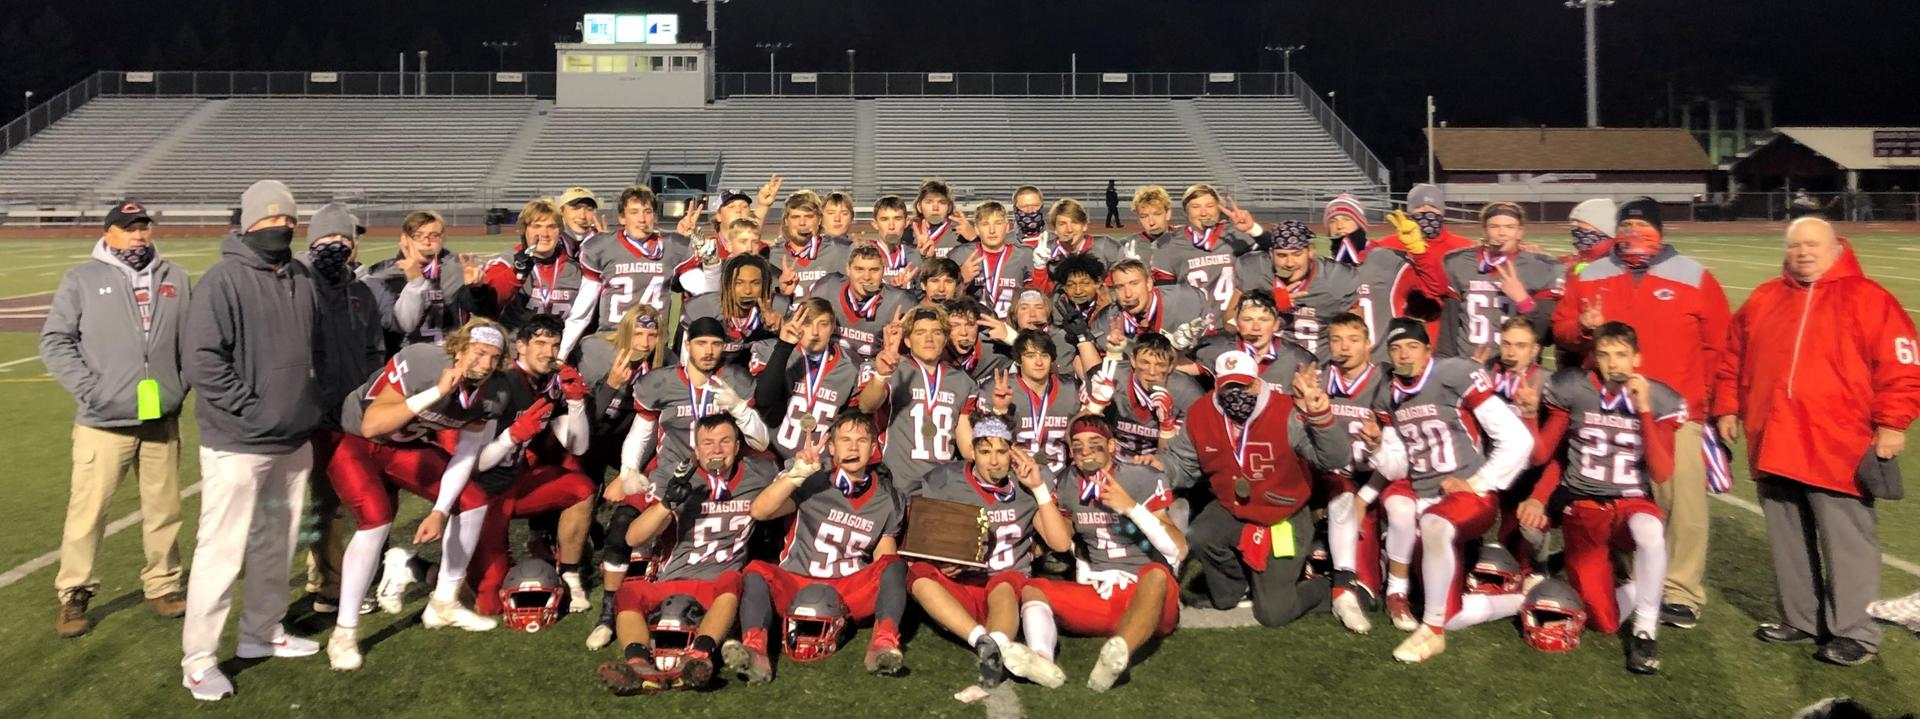 Dragons defeat Tyrone 10/31/20 17 - 14 in D6 3A football championship @ Mansion Park